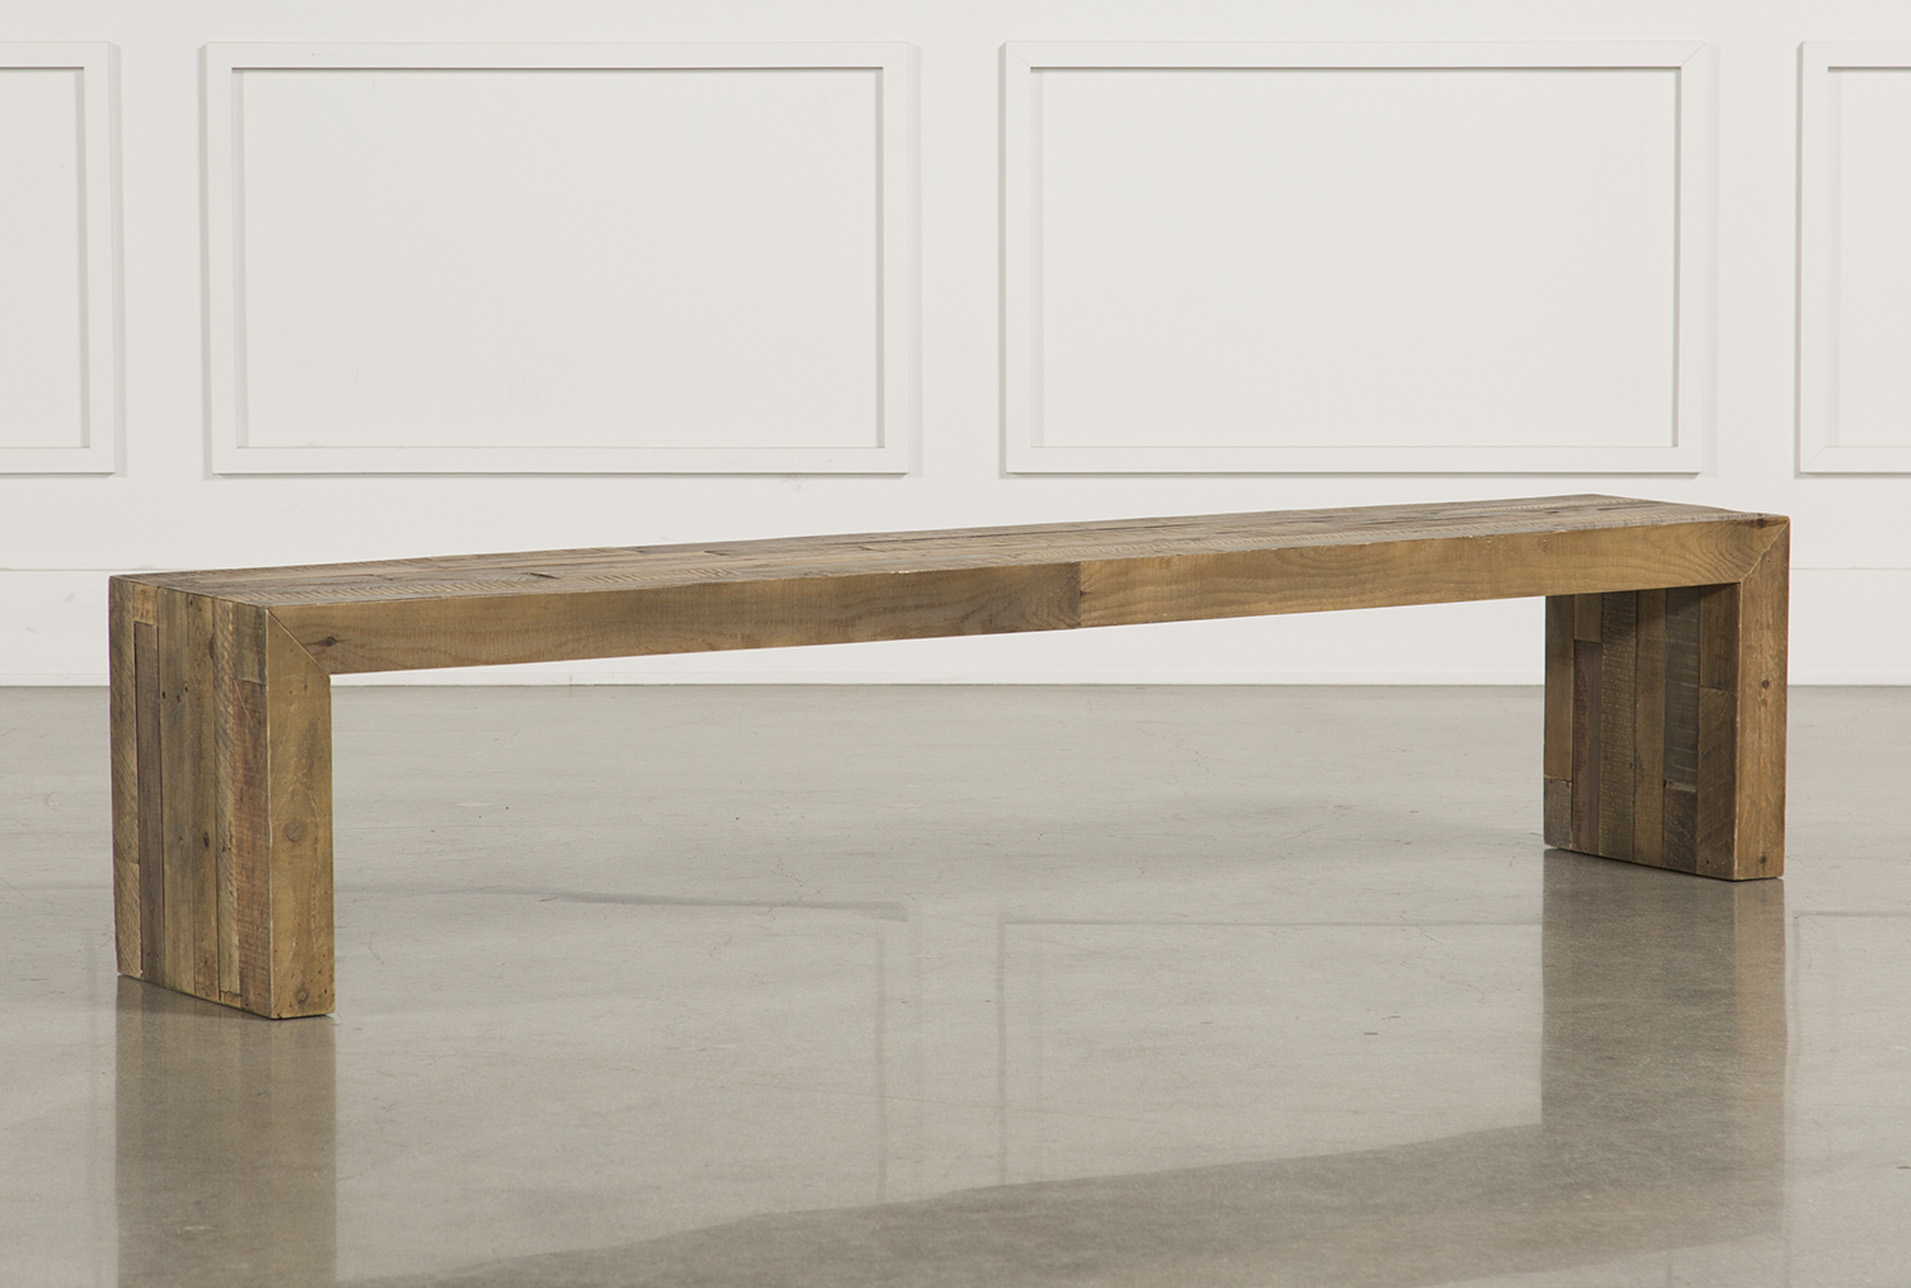 Tahoe Dining Bench (Qty: 1) Has Been Successfully Added To Your Cart.